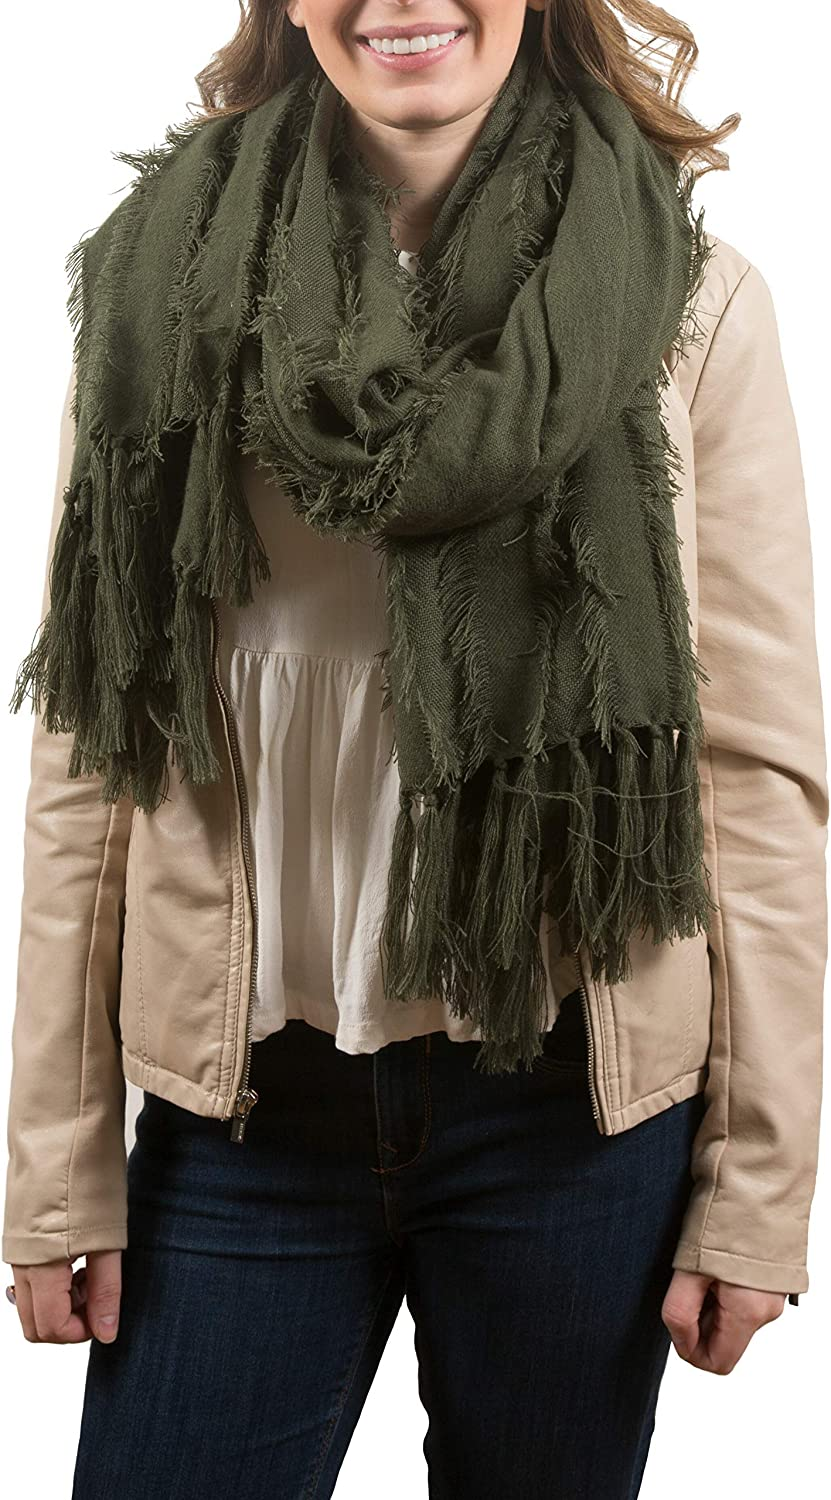 Pavilion Gift Company Army Green-Oversized Frayed Scarf, One Size